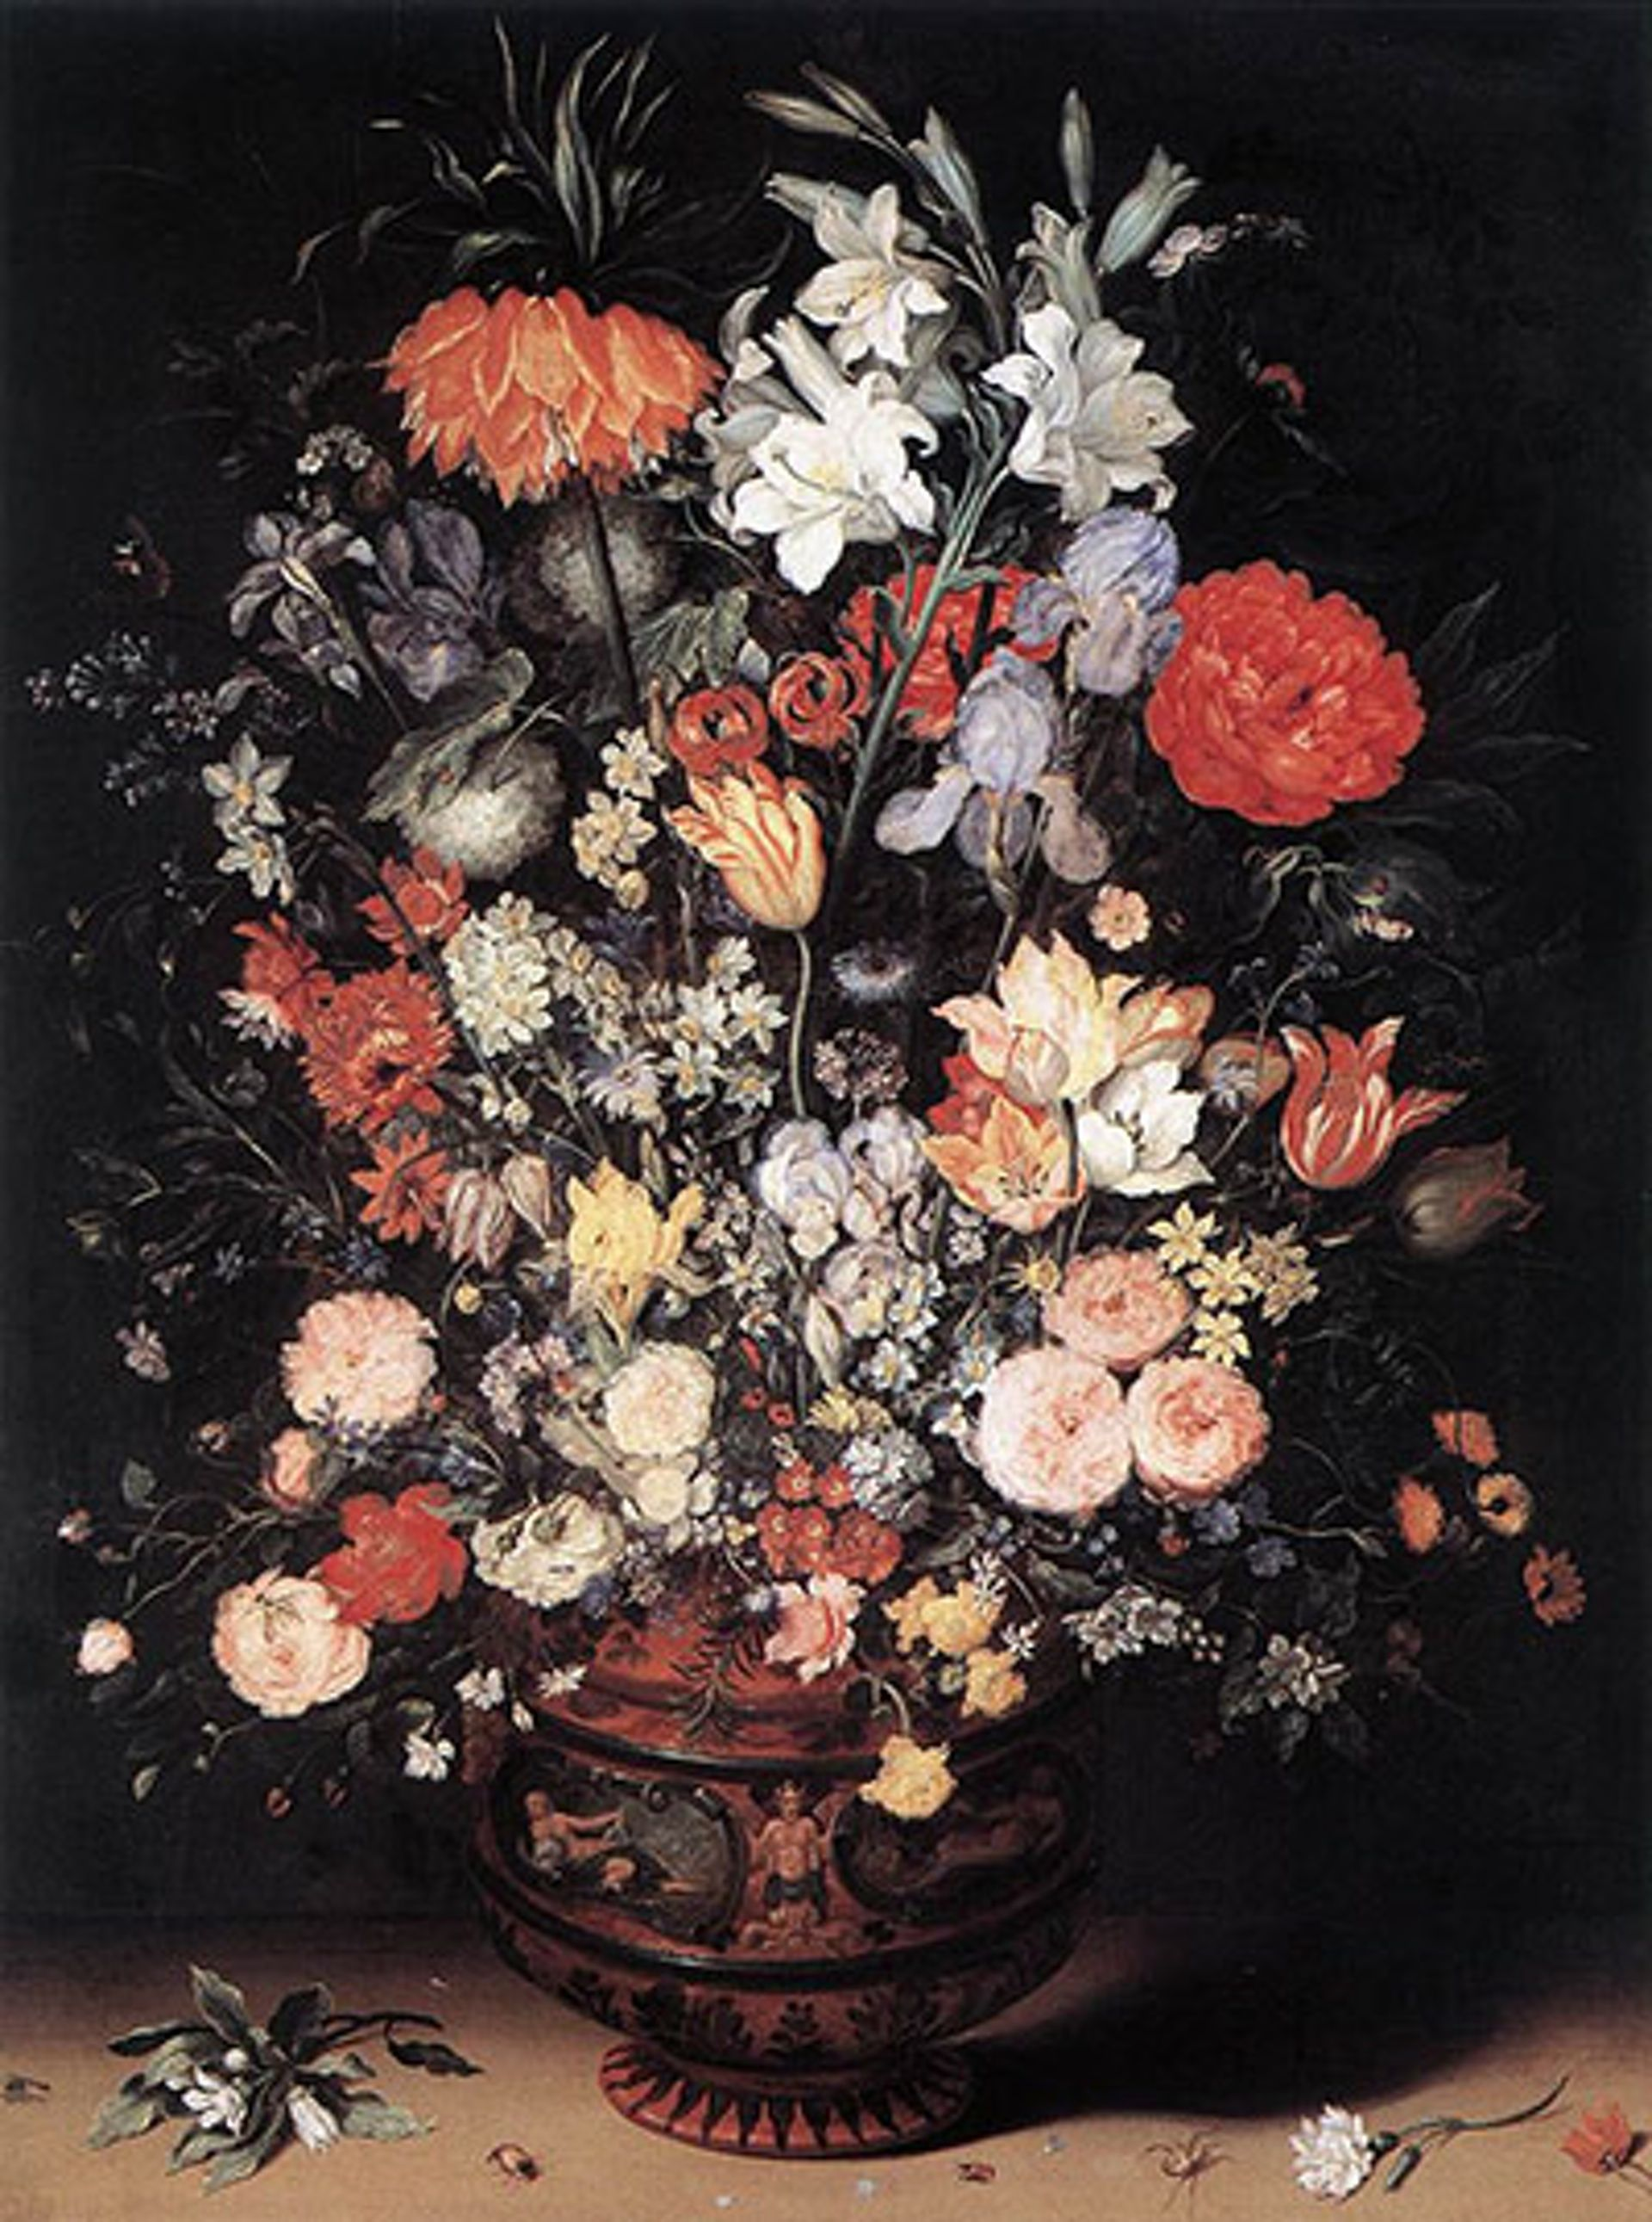 The 10 best flower paintings in pictures abstract art the 10 best flower paintings in pictures reviewsmspy